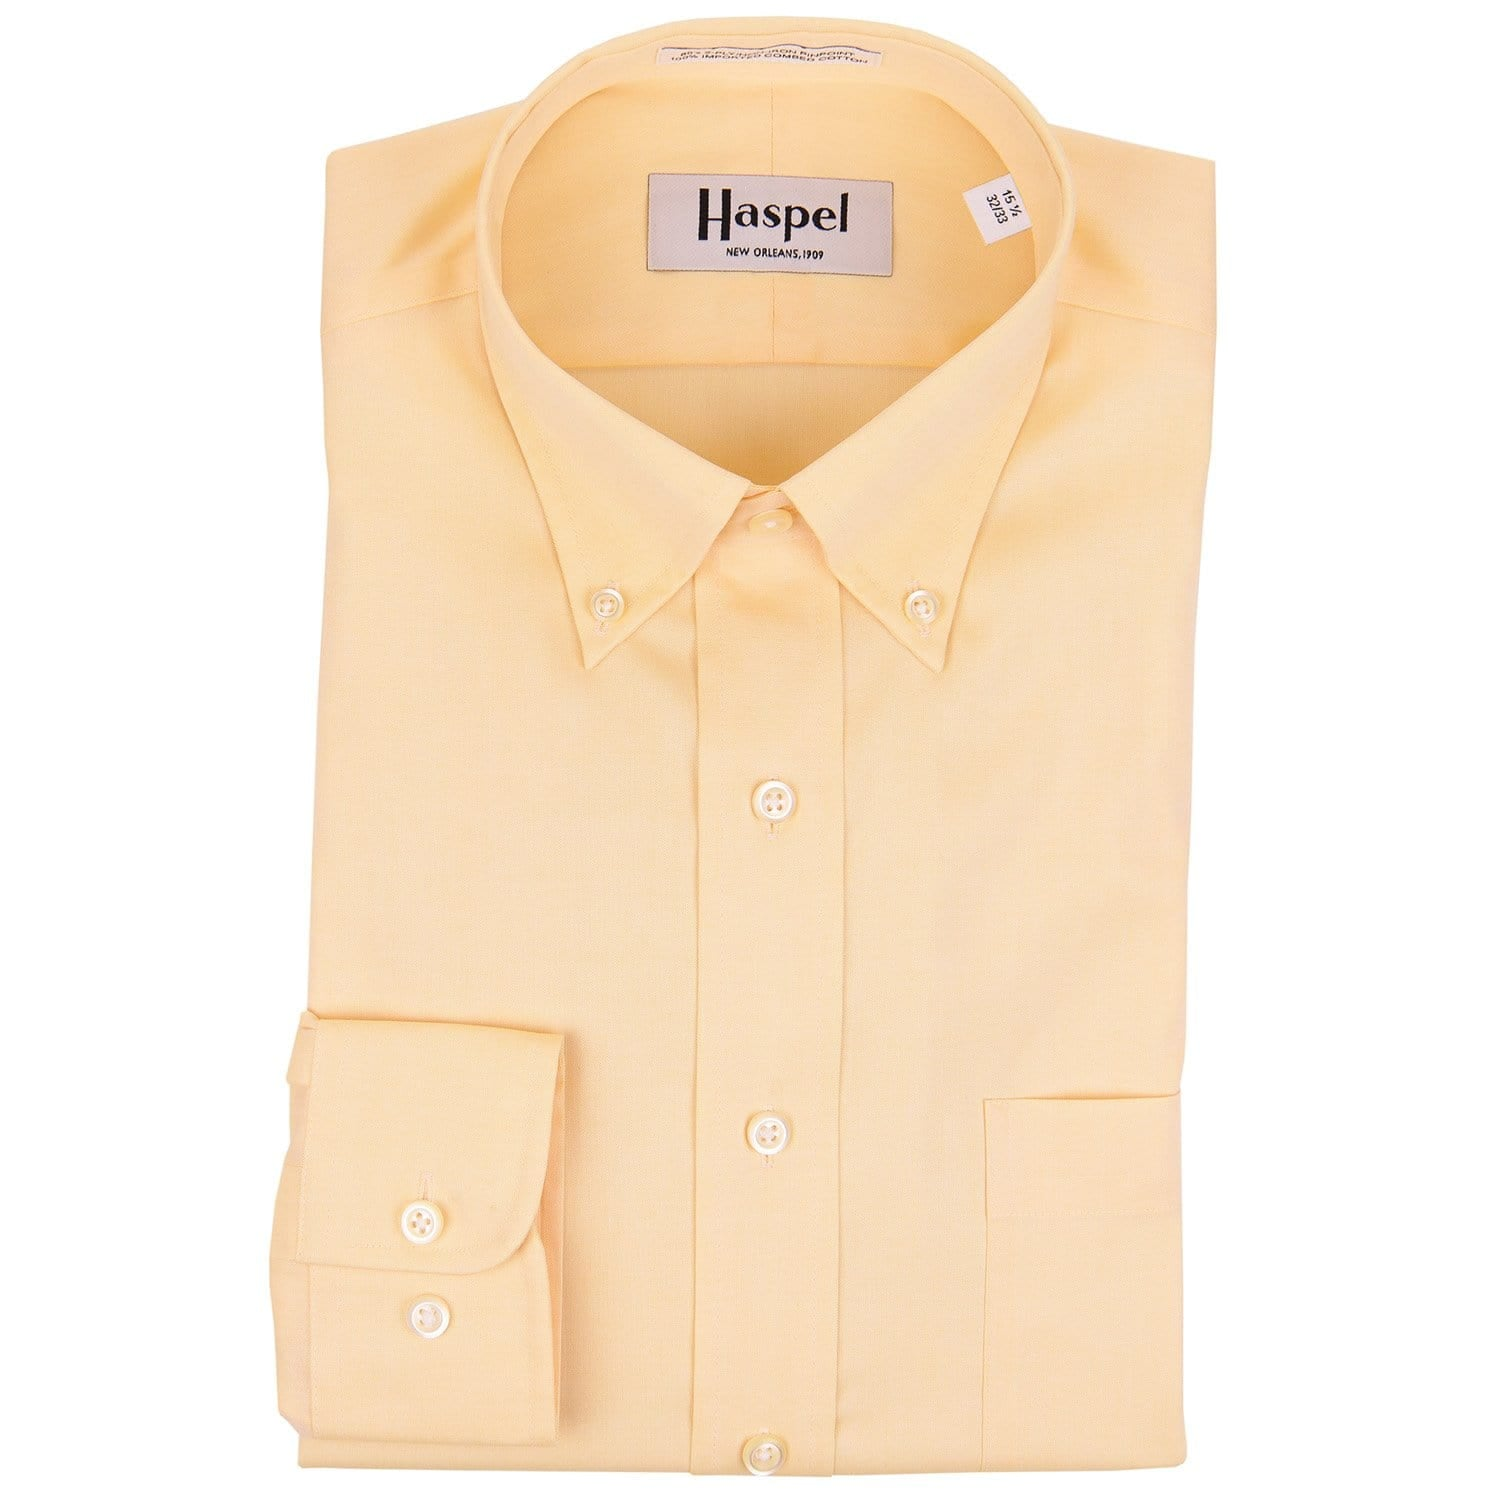 Howard Yellow Button Down Oxford Dress Shirt